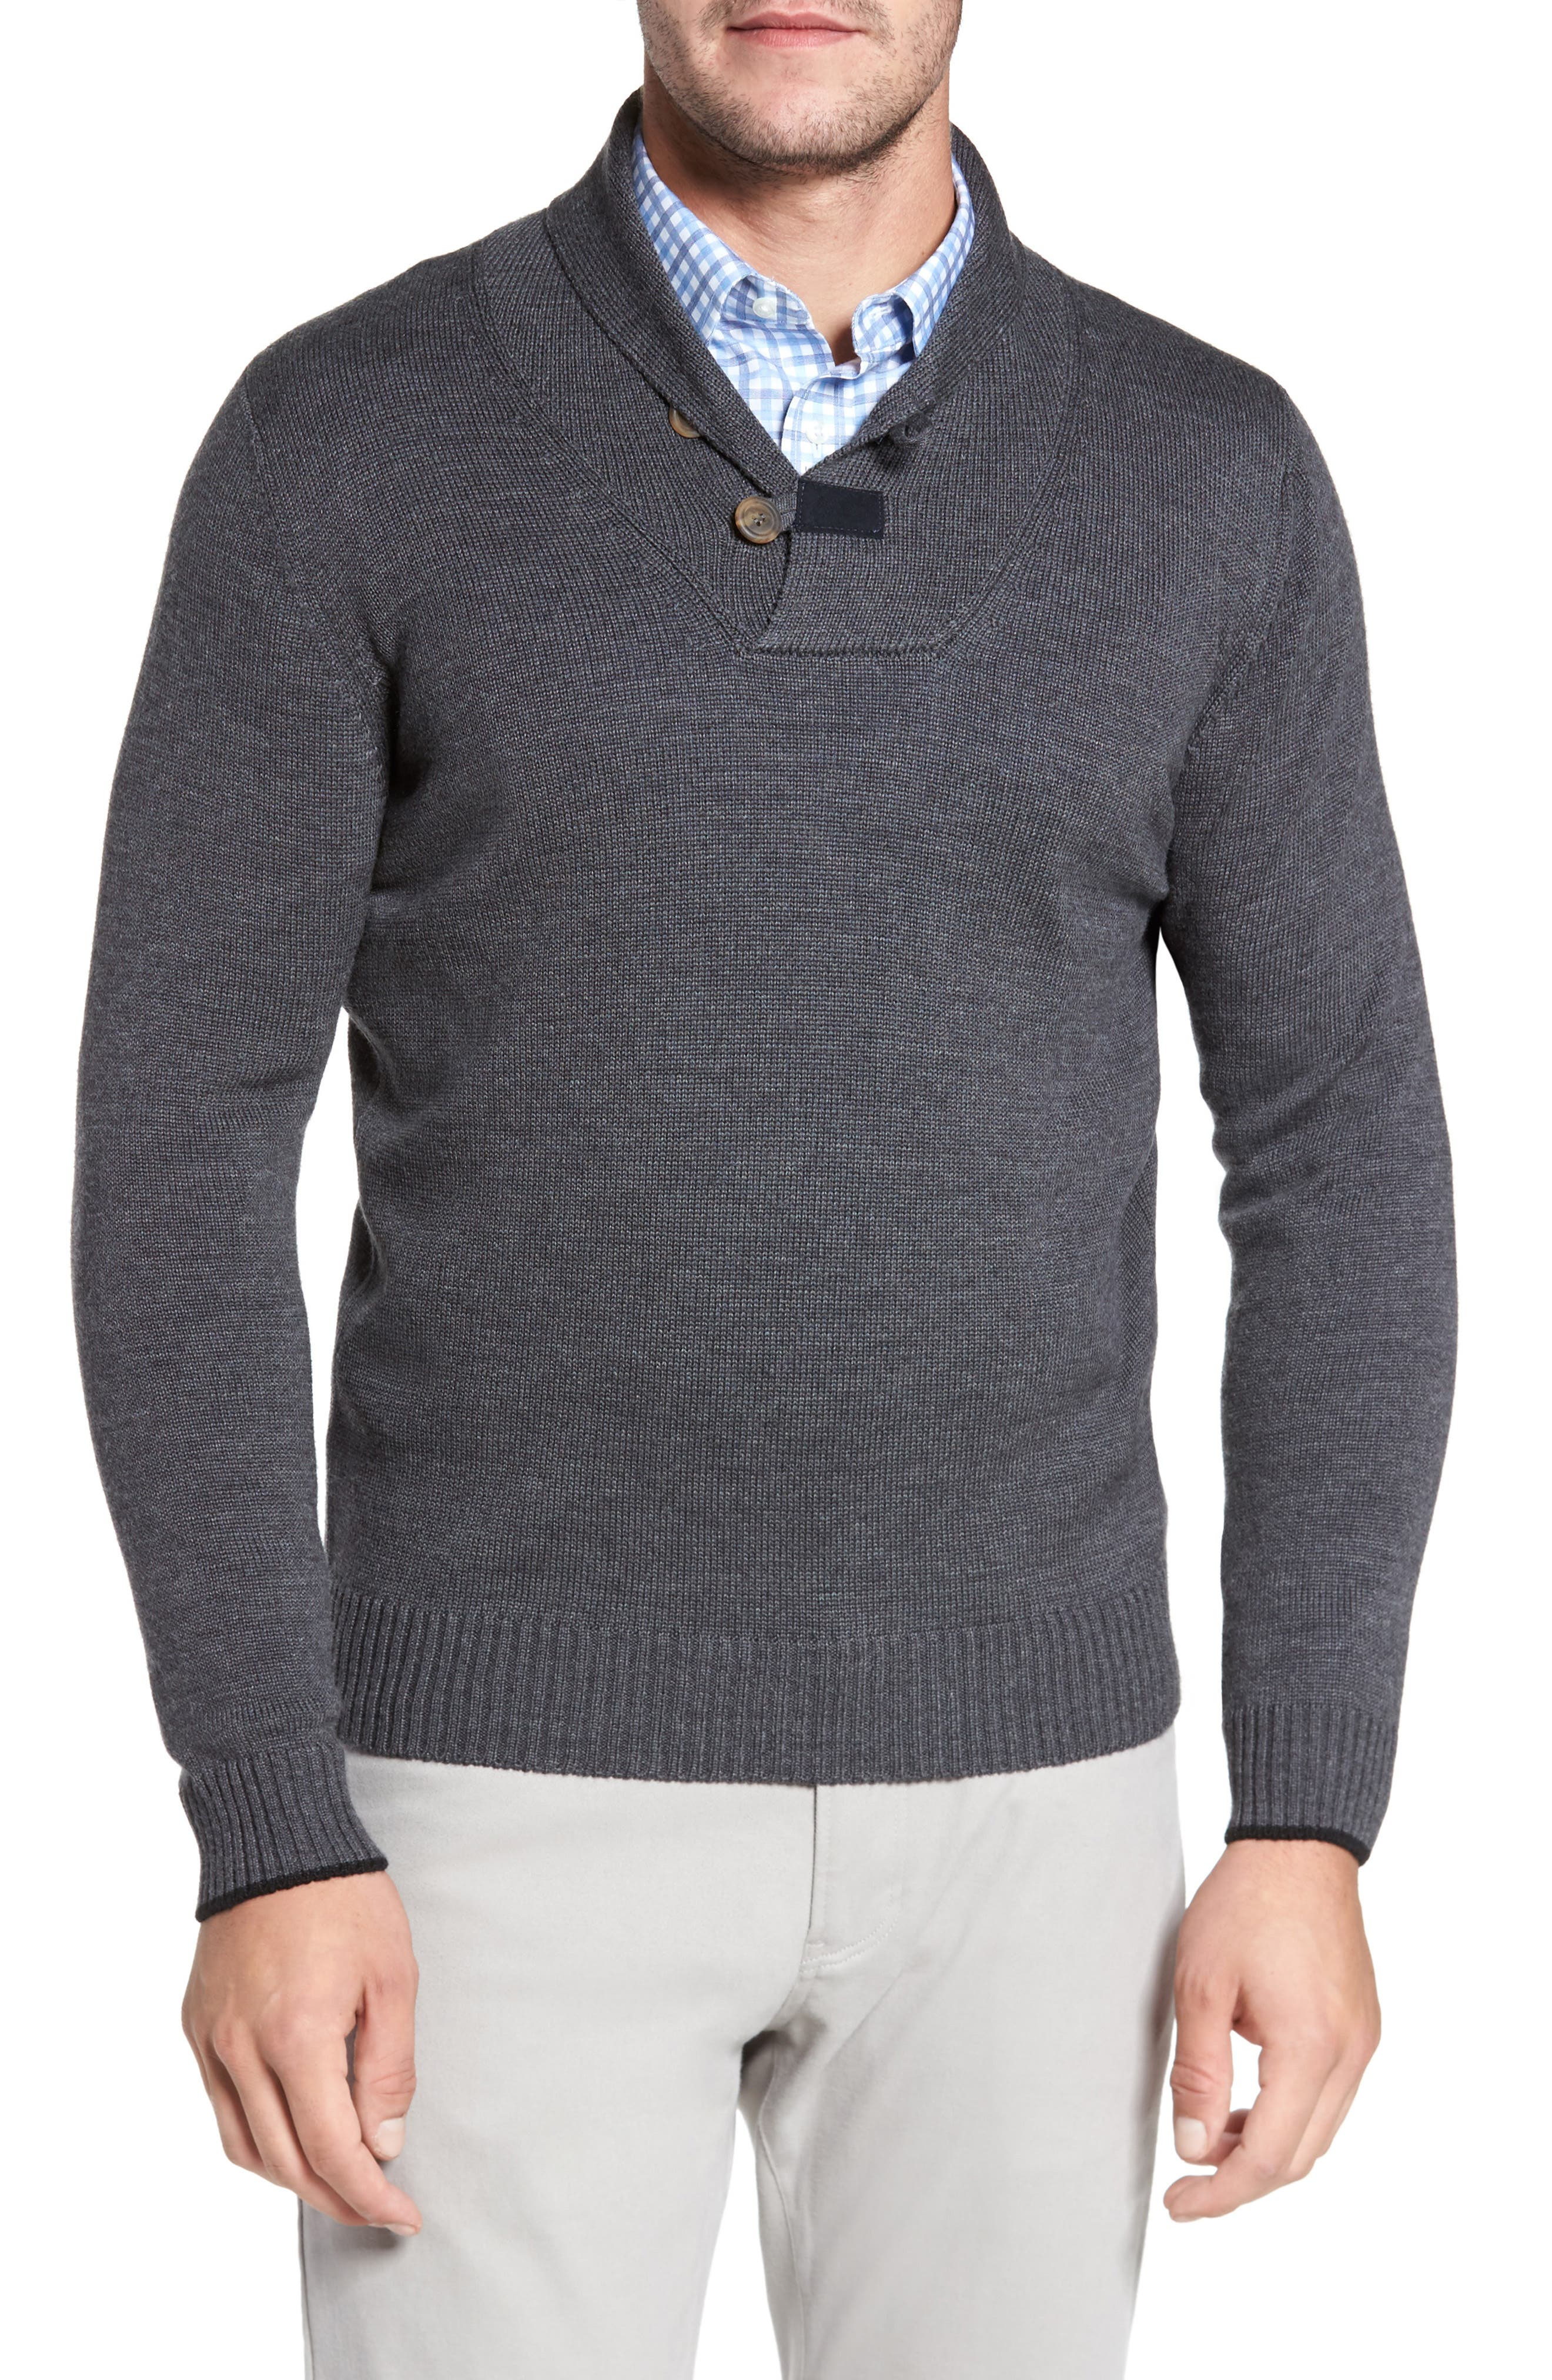 Main Image - David Donahue Merino Wool Shawl Collar Pullover